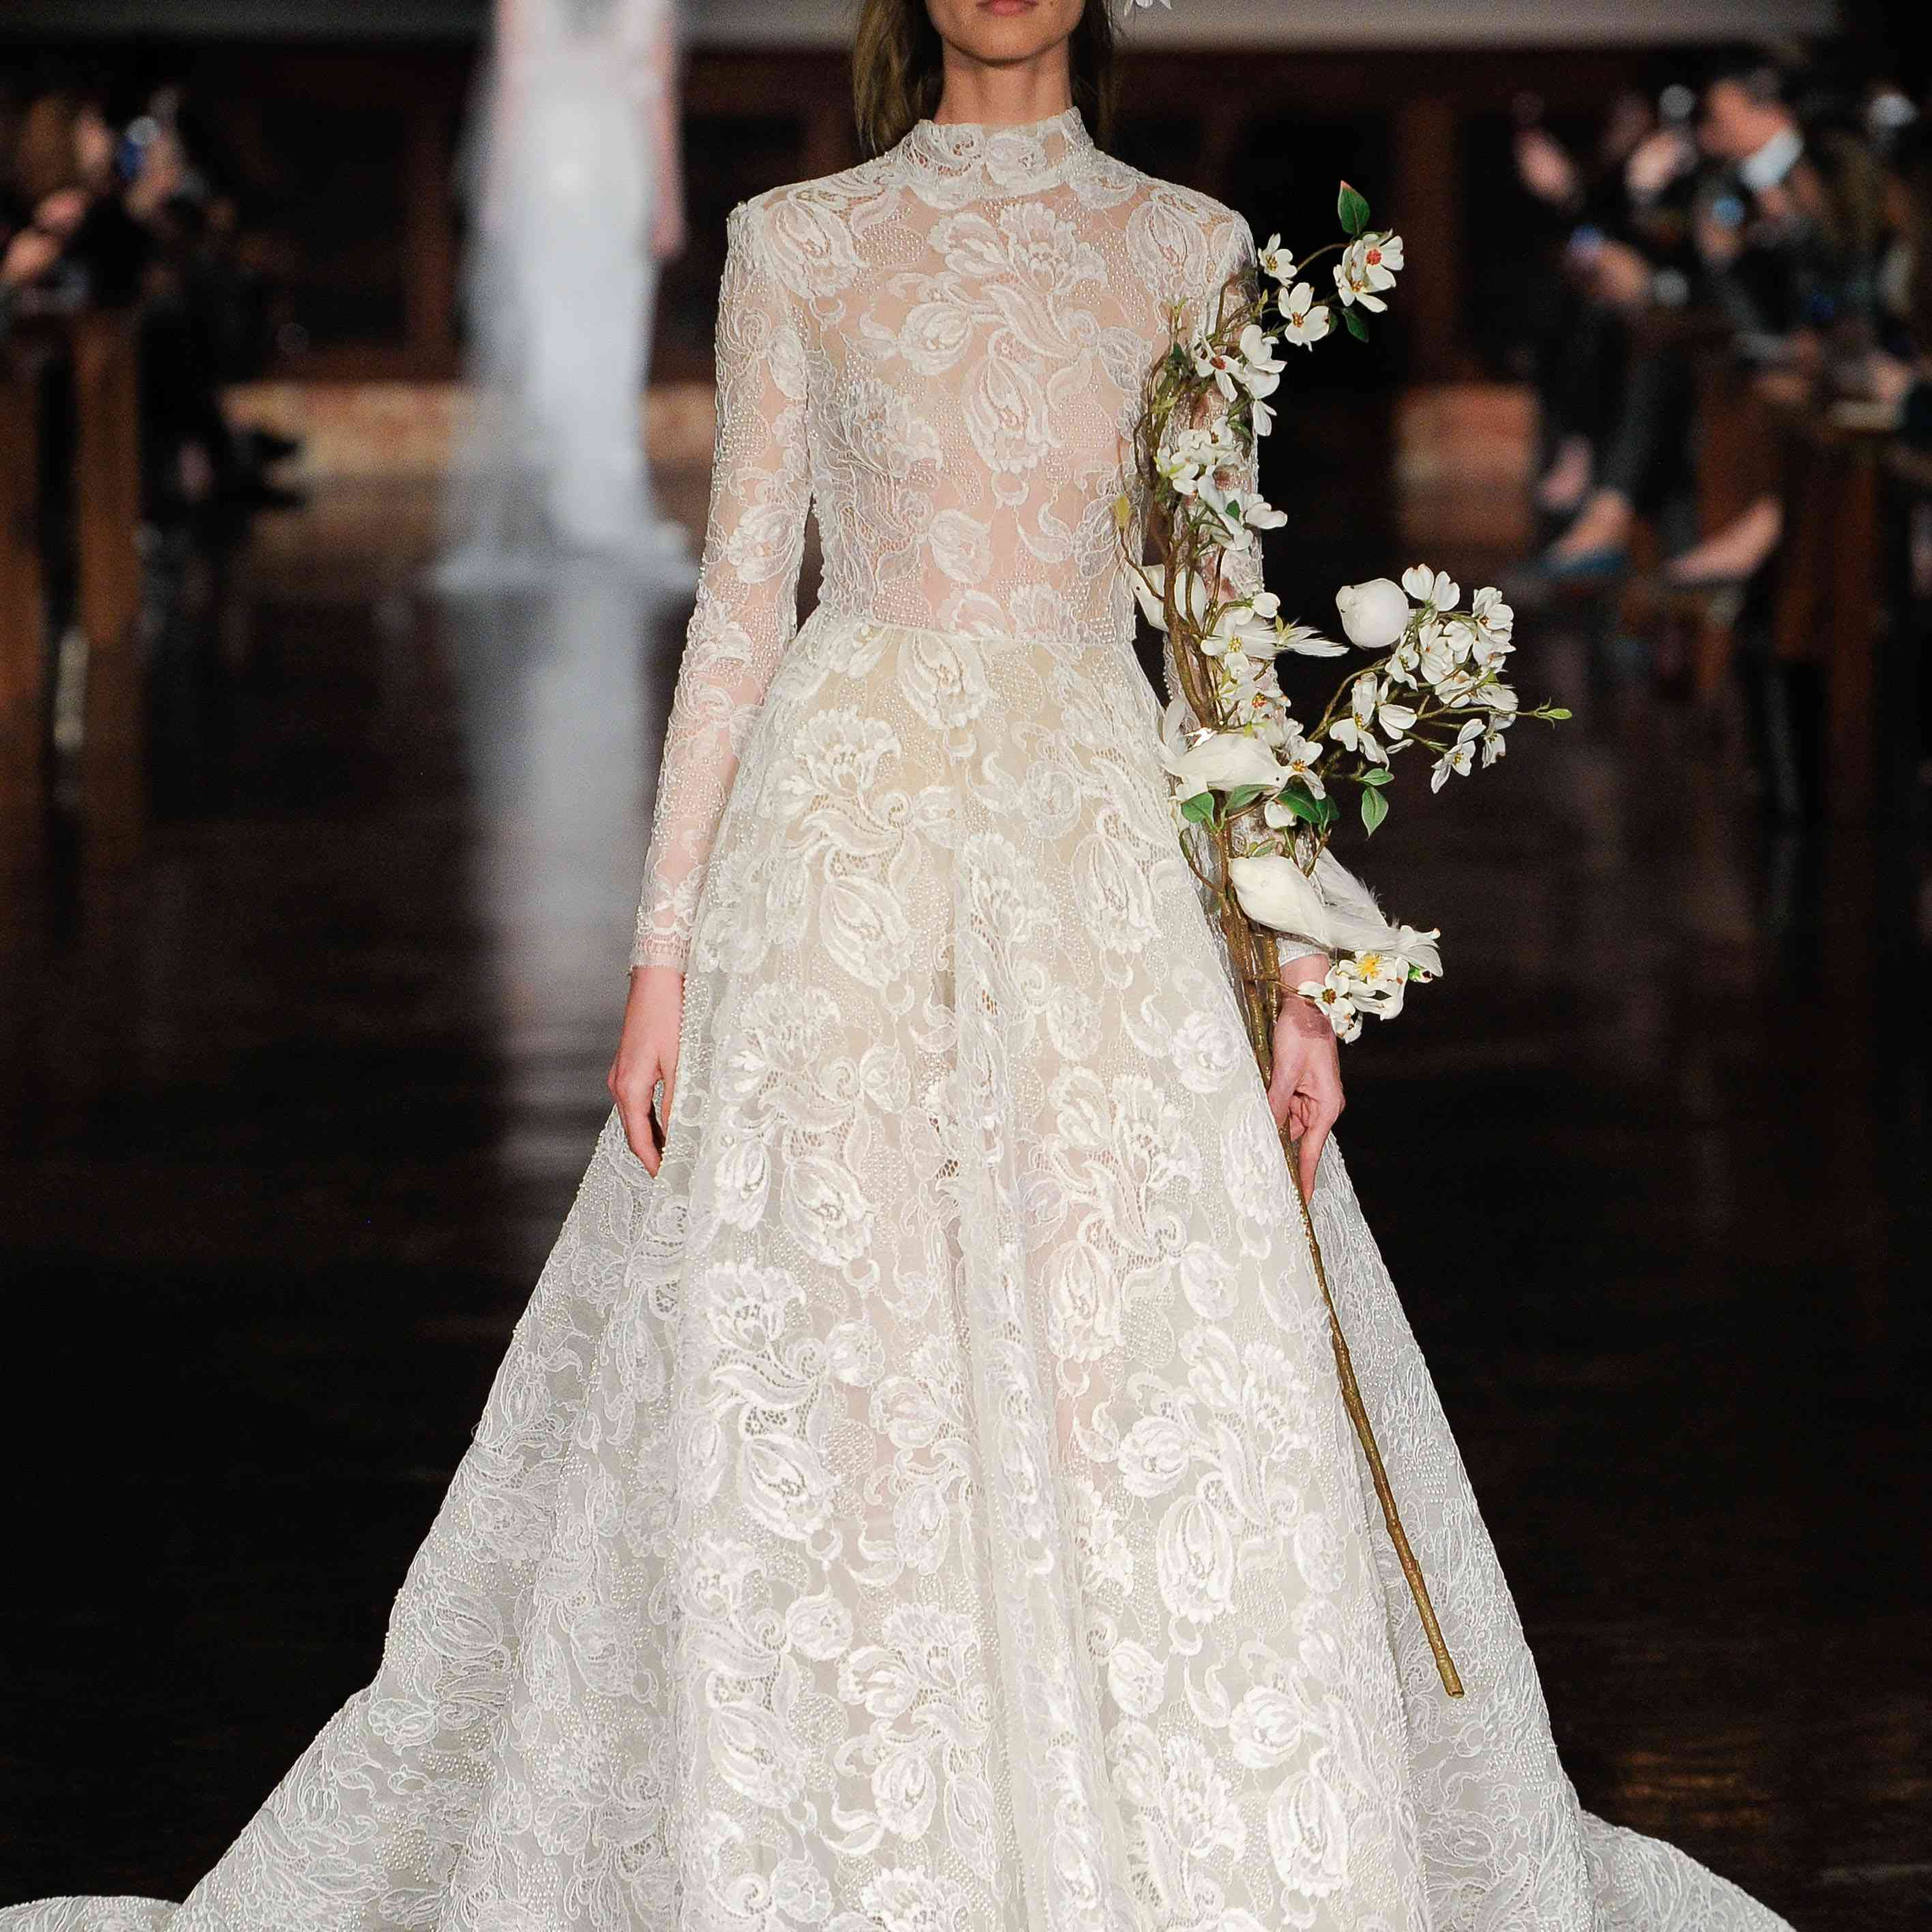 The Top Wedding Dress Trends Of 2019,How To Alter A Wedding Dress That Is Too Big